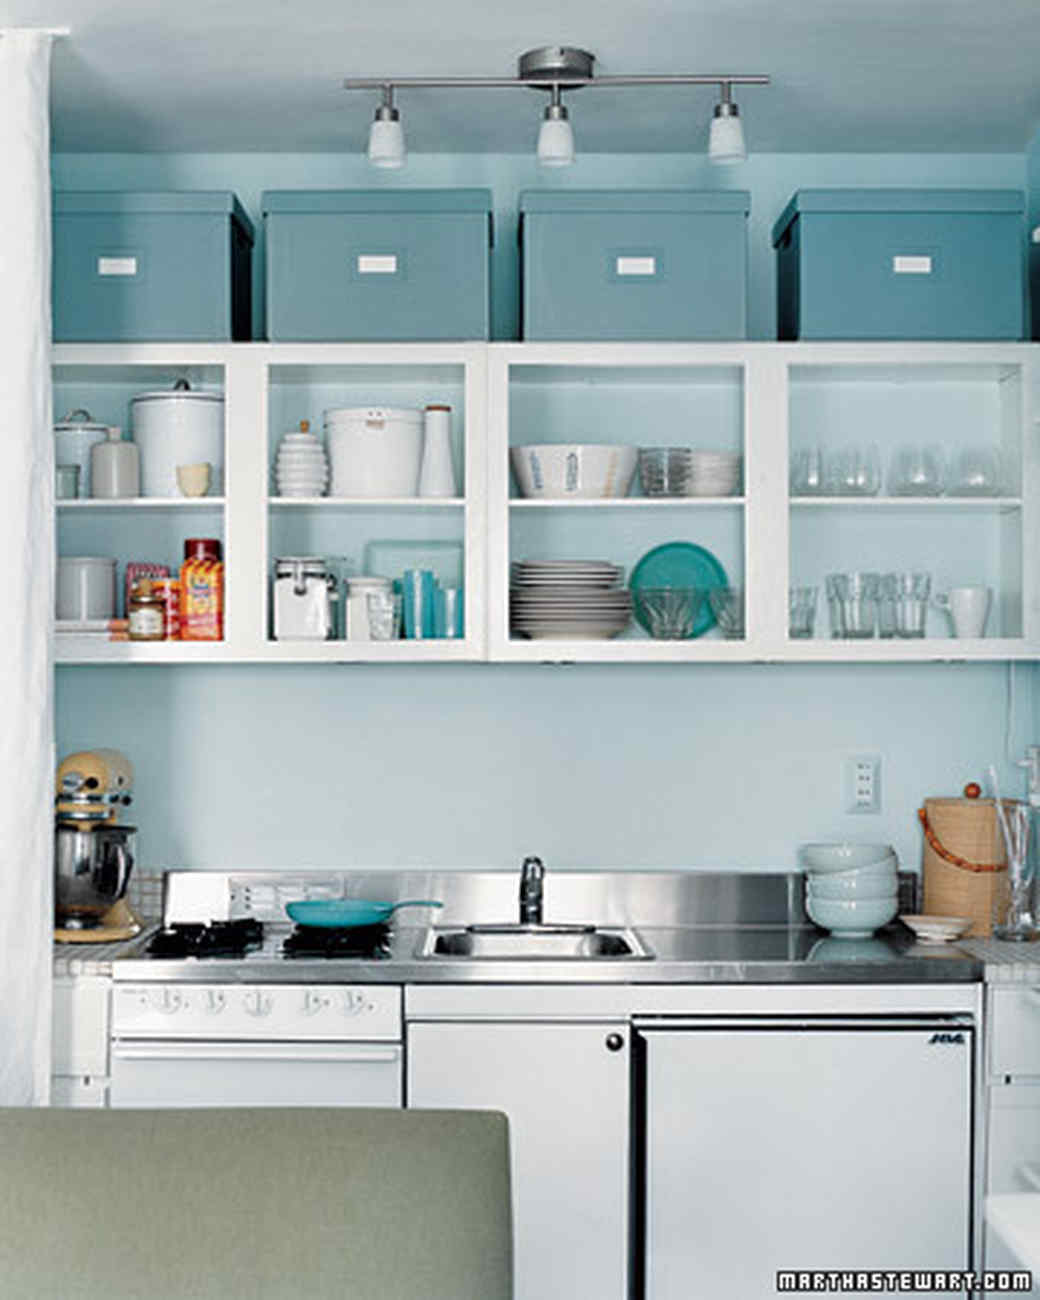 Merveilleux Stretch Storage To The Ceiling. With A Diminutive Kitchen ...